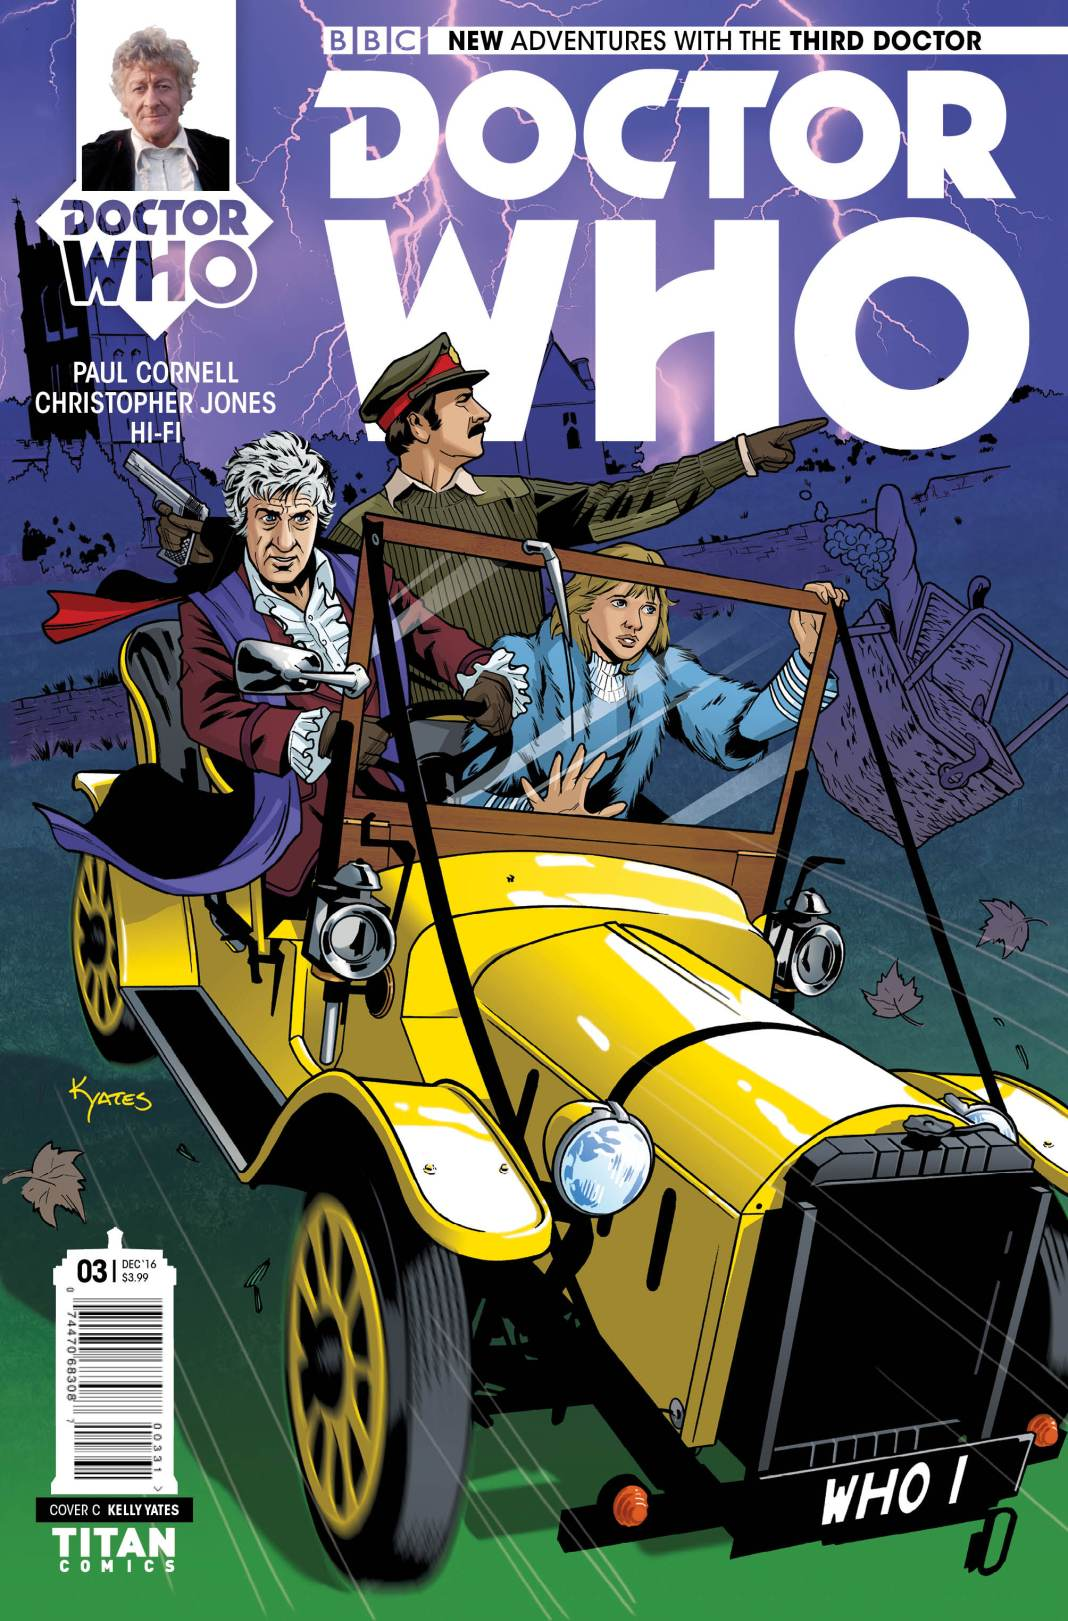 TITAN COMICS - THIRD DOCTOR #3 COVER C BY KELLY YATES